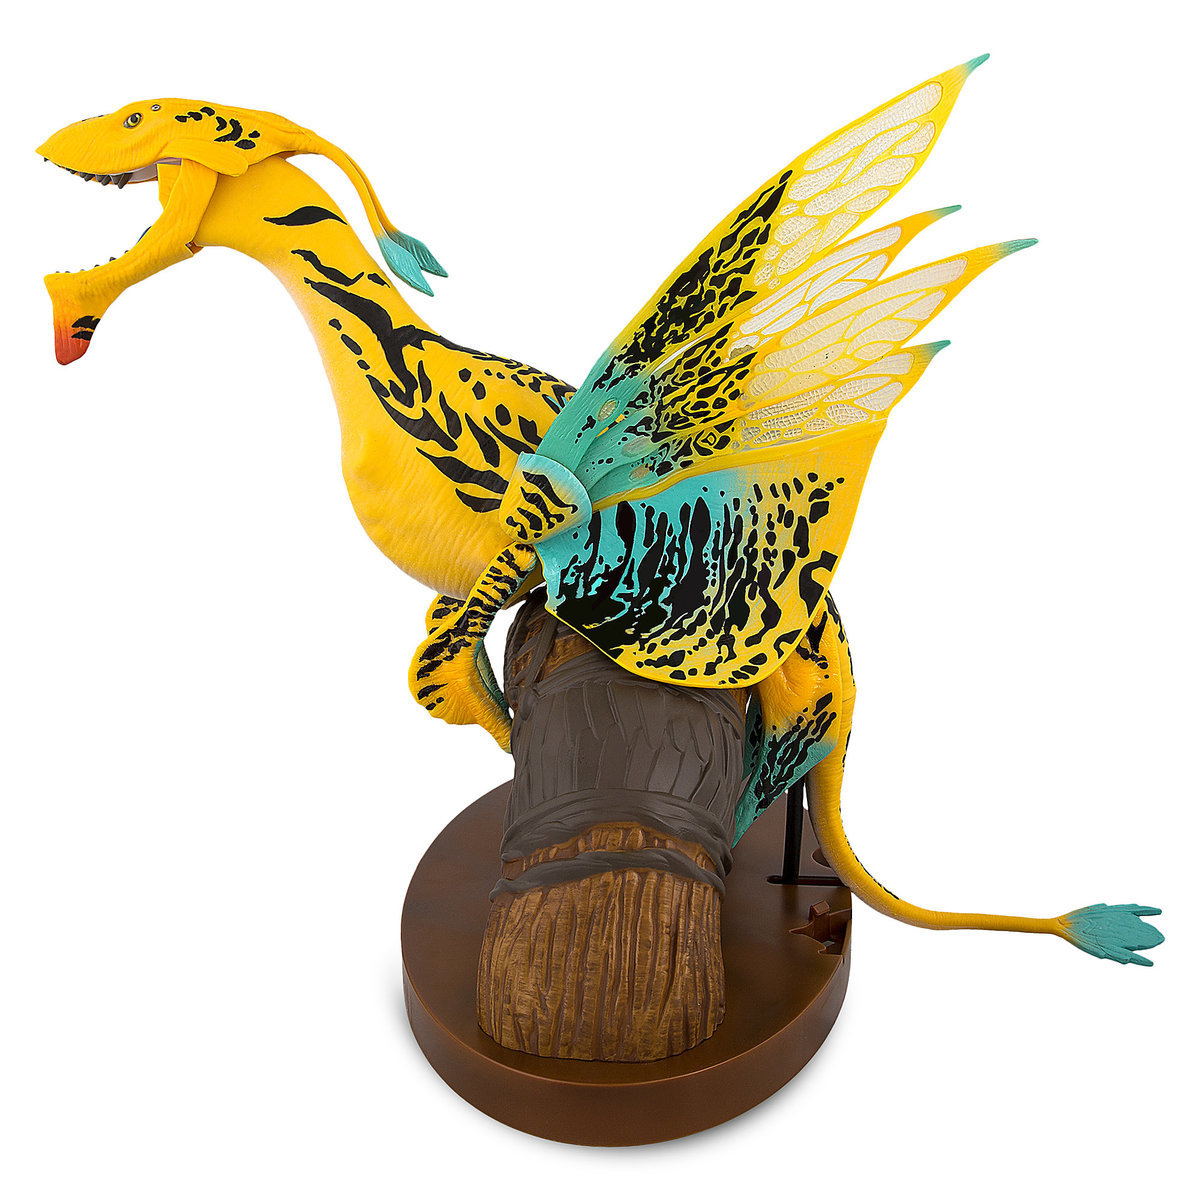 Avatar 2 Toys: Yellow Body With Green Accents